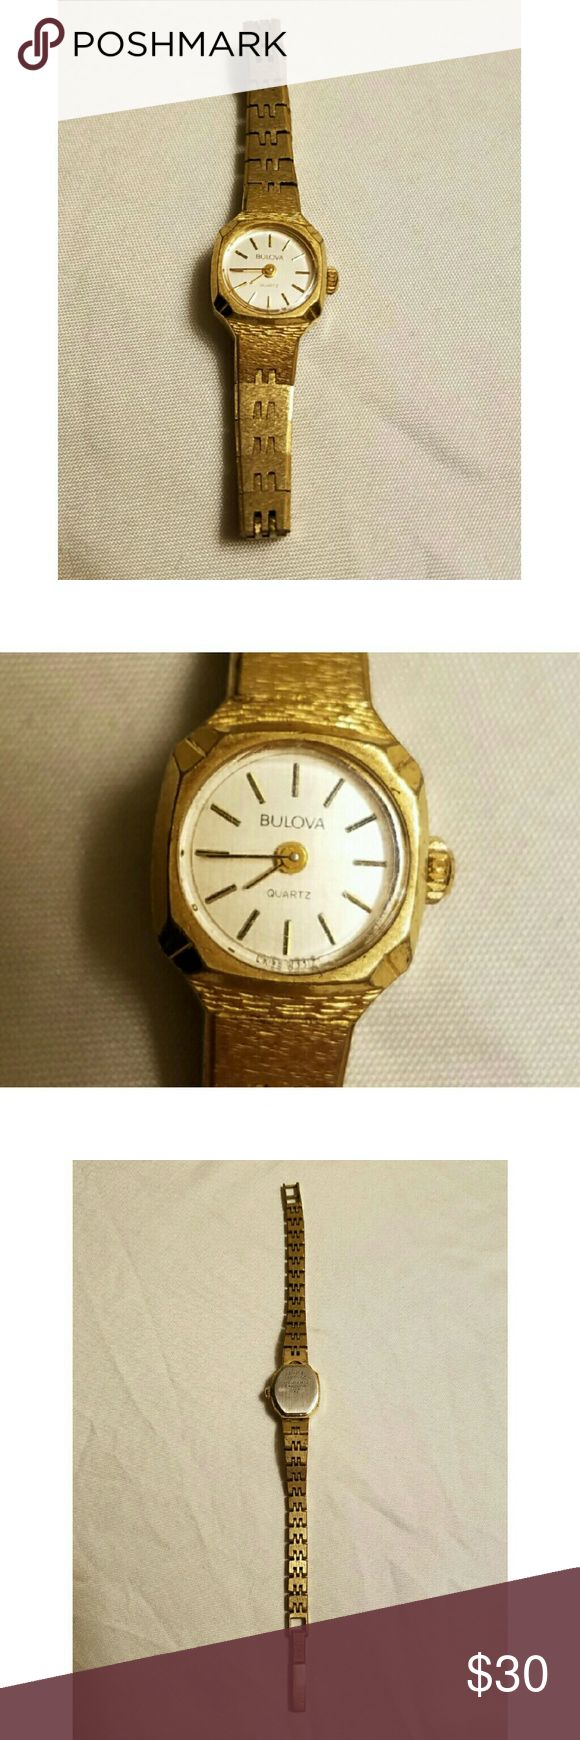 Bulova watch Vintage Bulova copper/gold colored watch. Bulova Accessories Watches